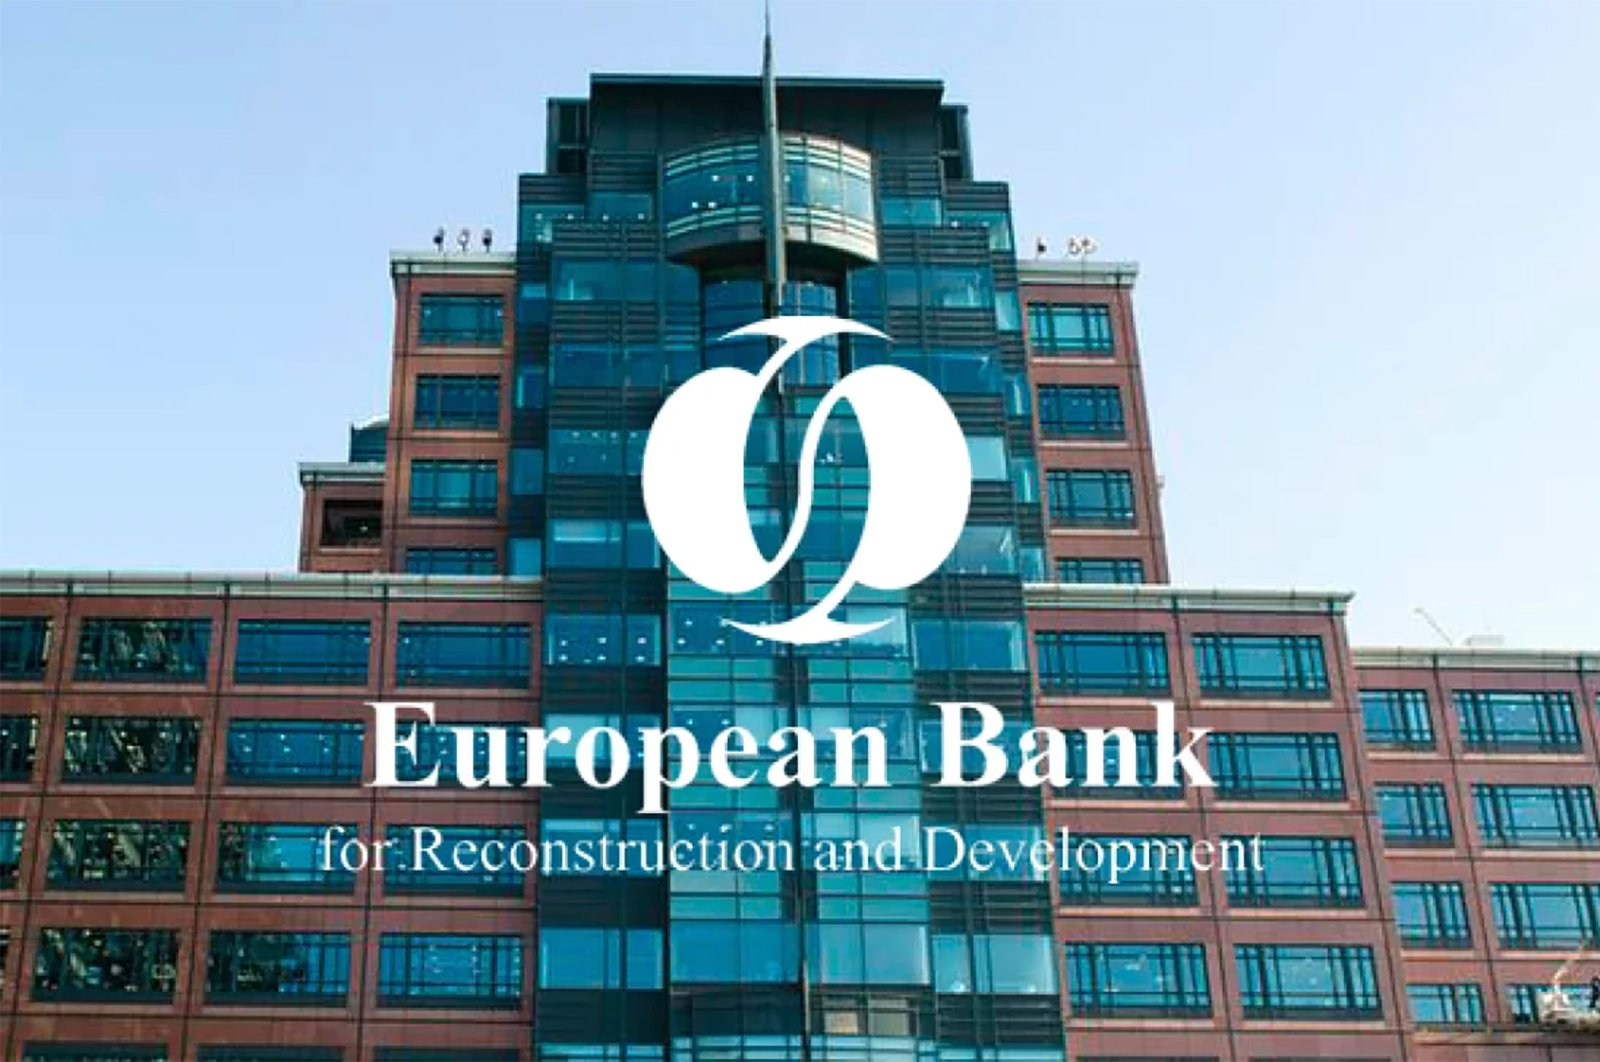 The European Bank for Reconstruction and Development headquarters, London, the U.K., July 18, 2020. (Sabah File Photo)